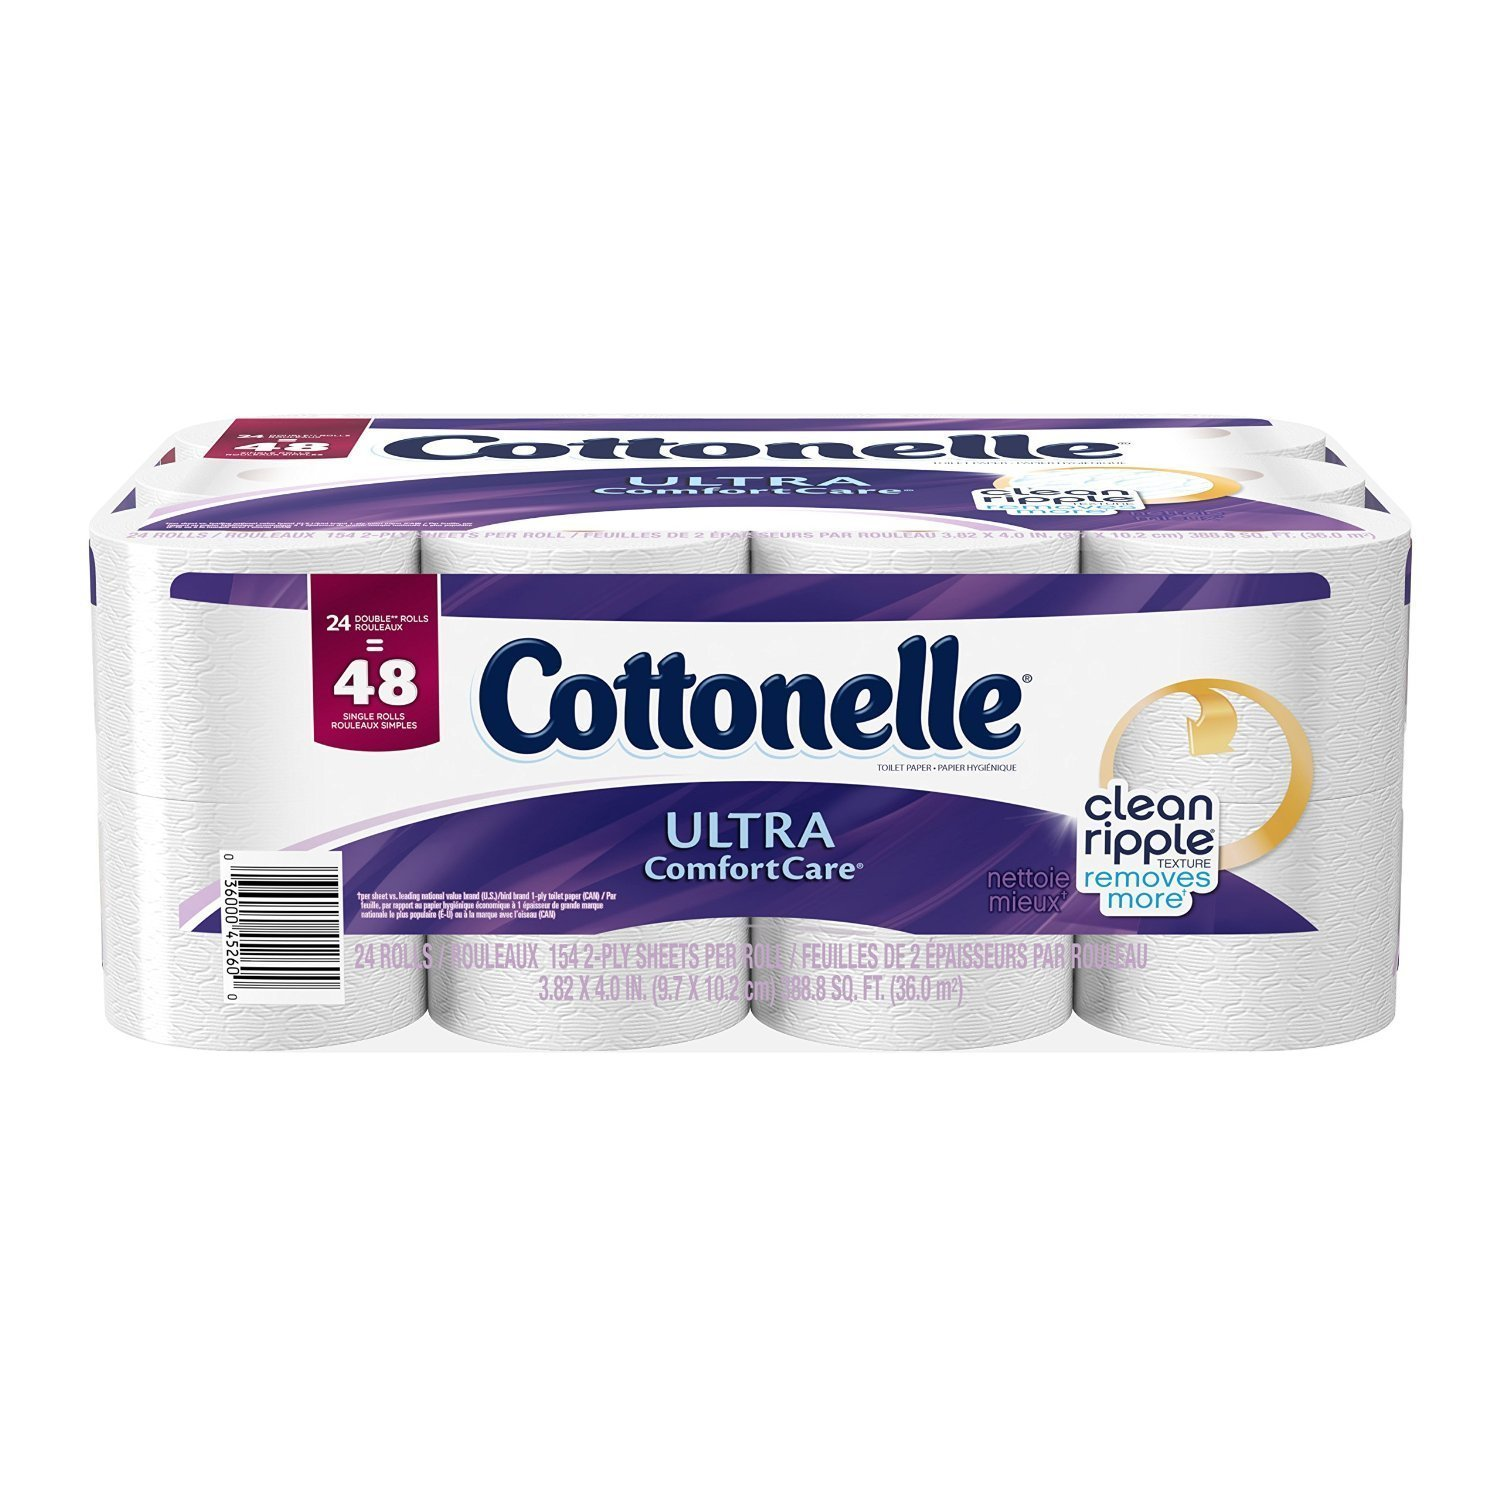 Cottonelle Ultra Comfort Care Toilet Paper - Double Roll - 24 pk